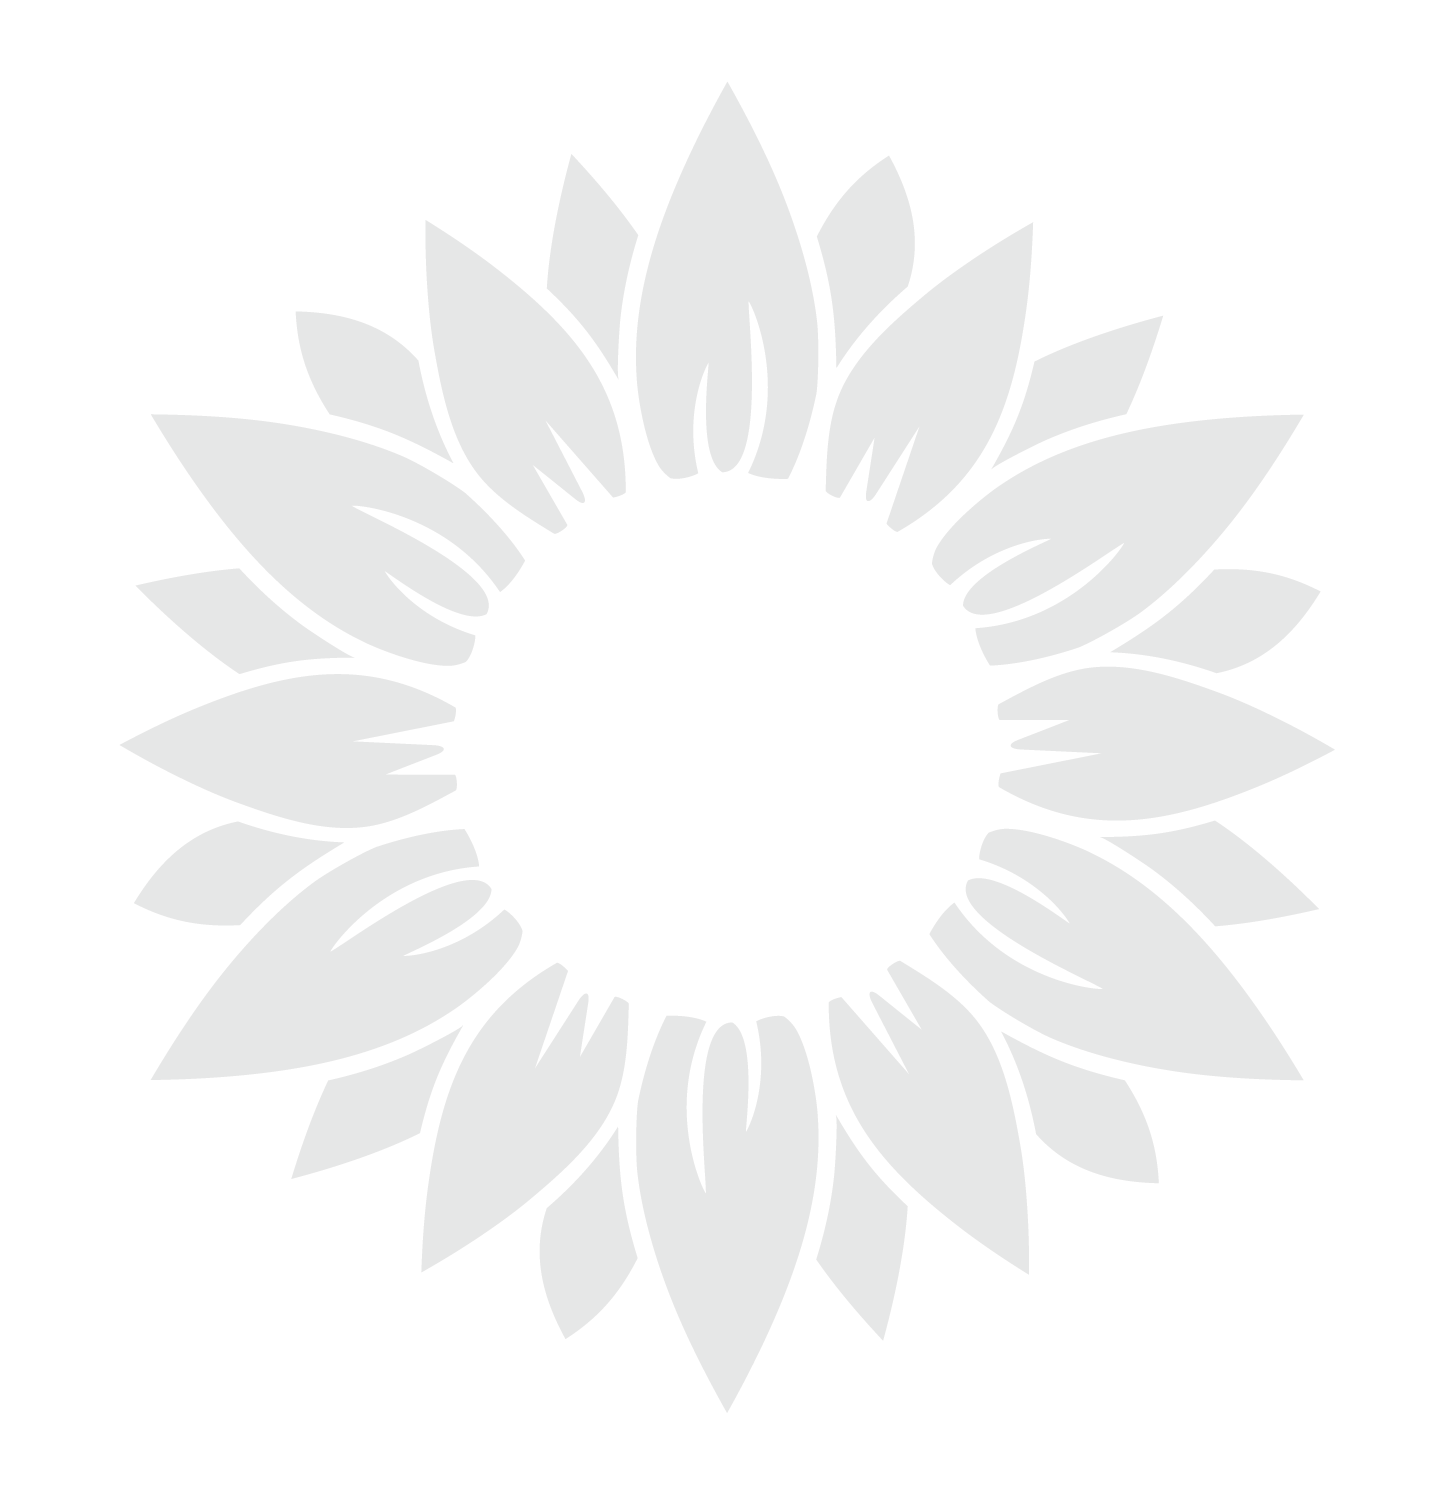 sunflower background image